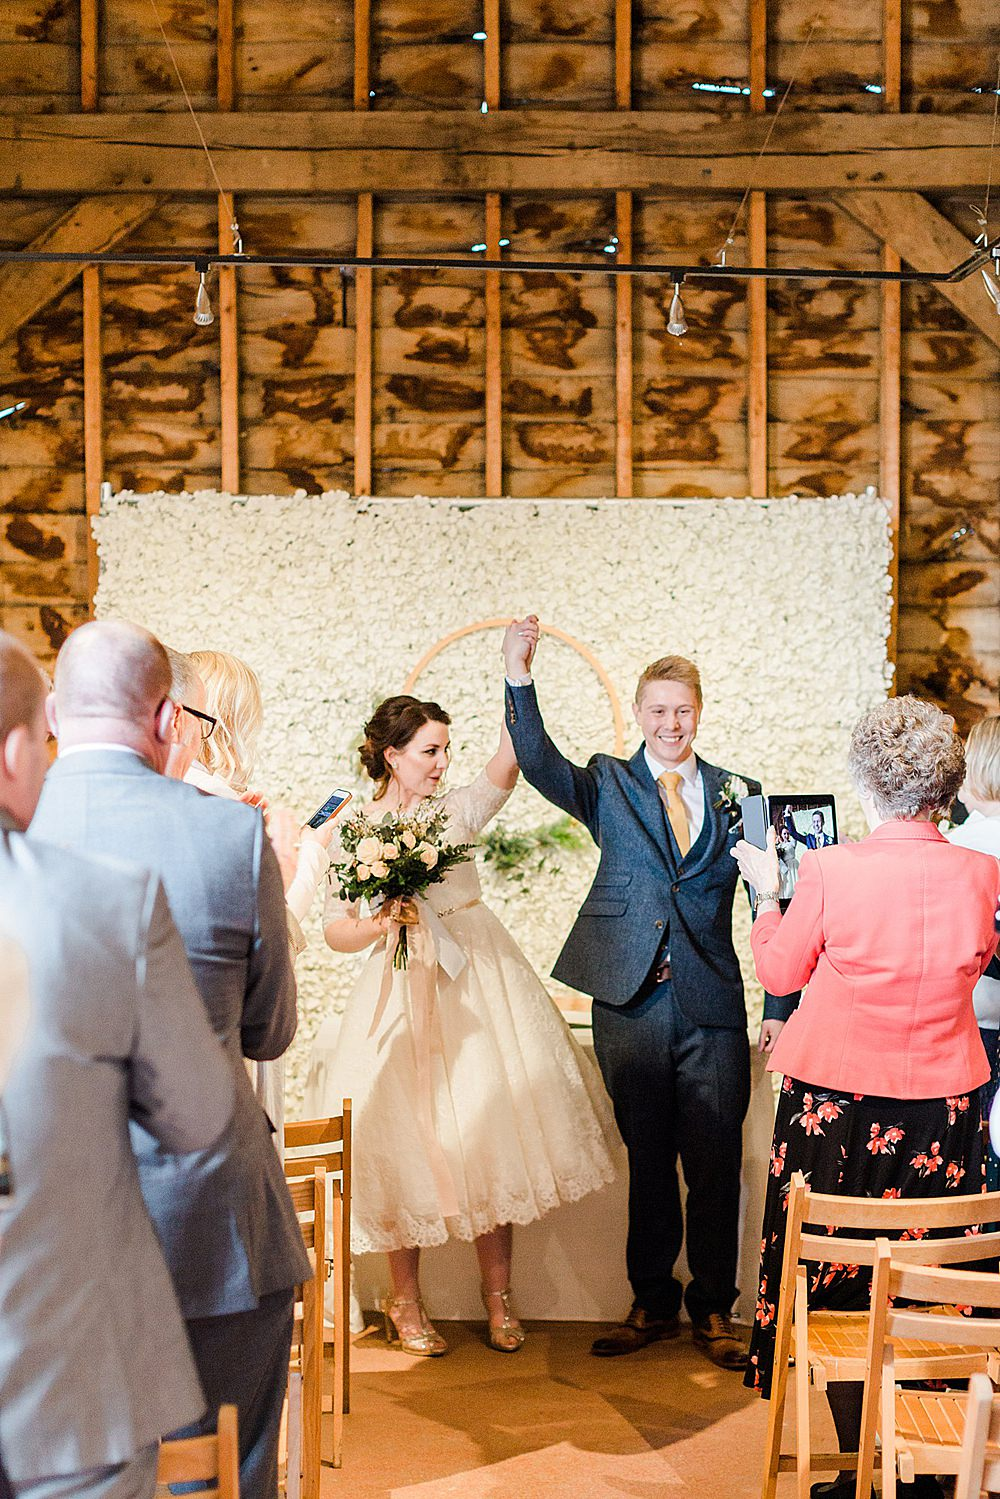 Barn Ceremony Room Decor Flower Wall Backdrop Hoop Greenery Chiltern Open Air Museum Wedding Terri & Lori Fine Art Photography